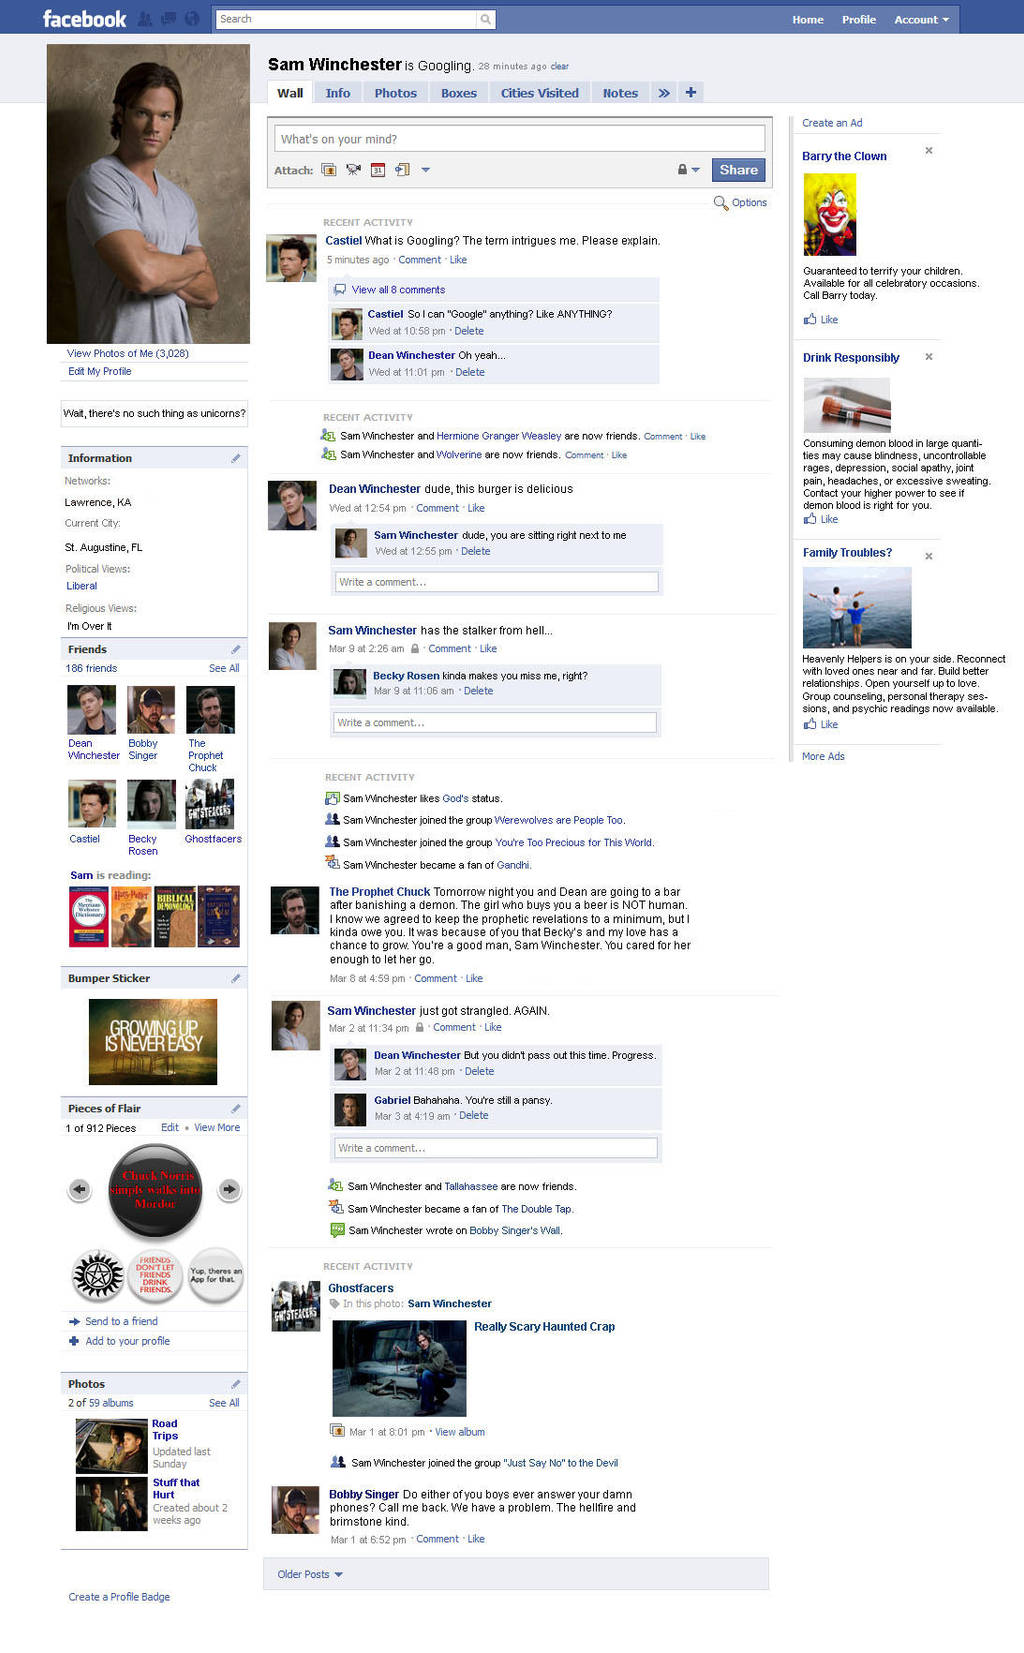 Sam's Facebook Page by kiles85